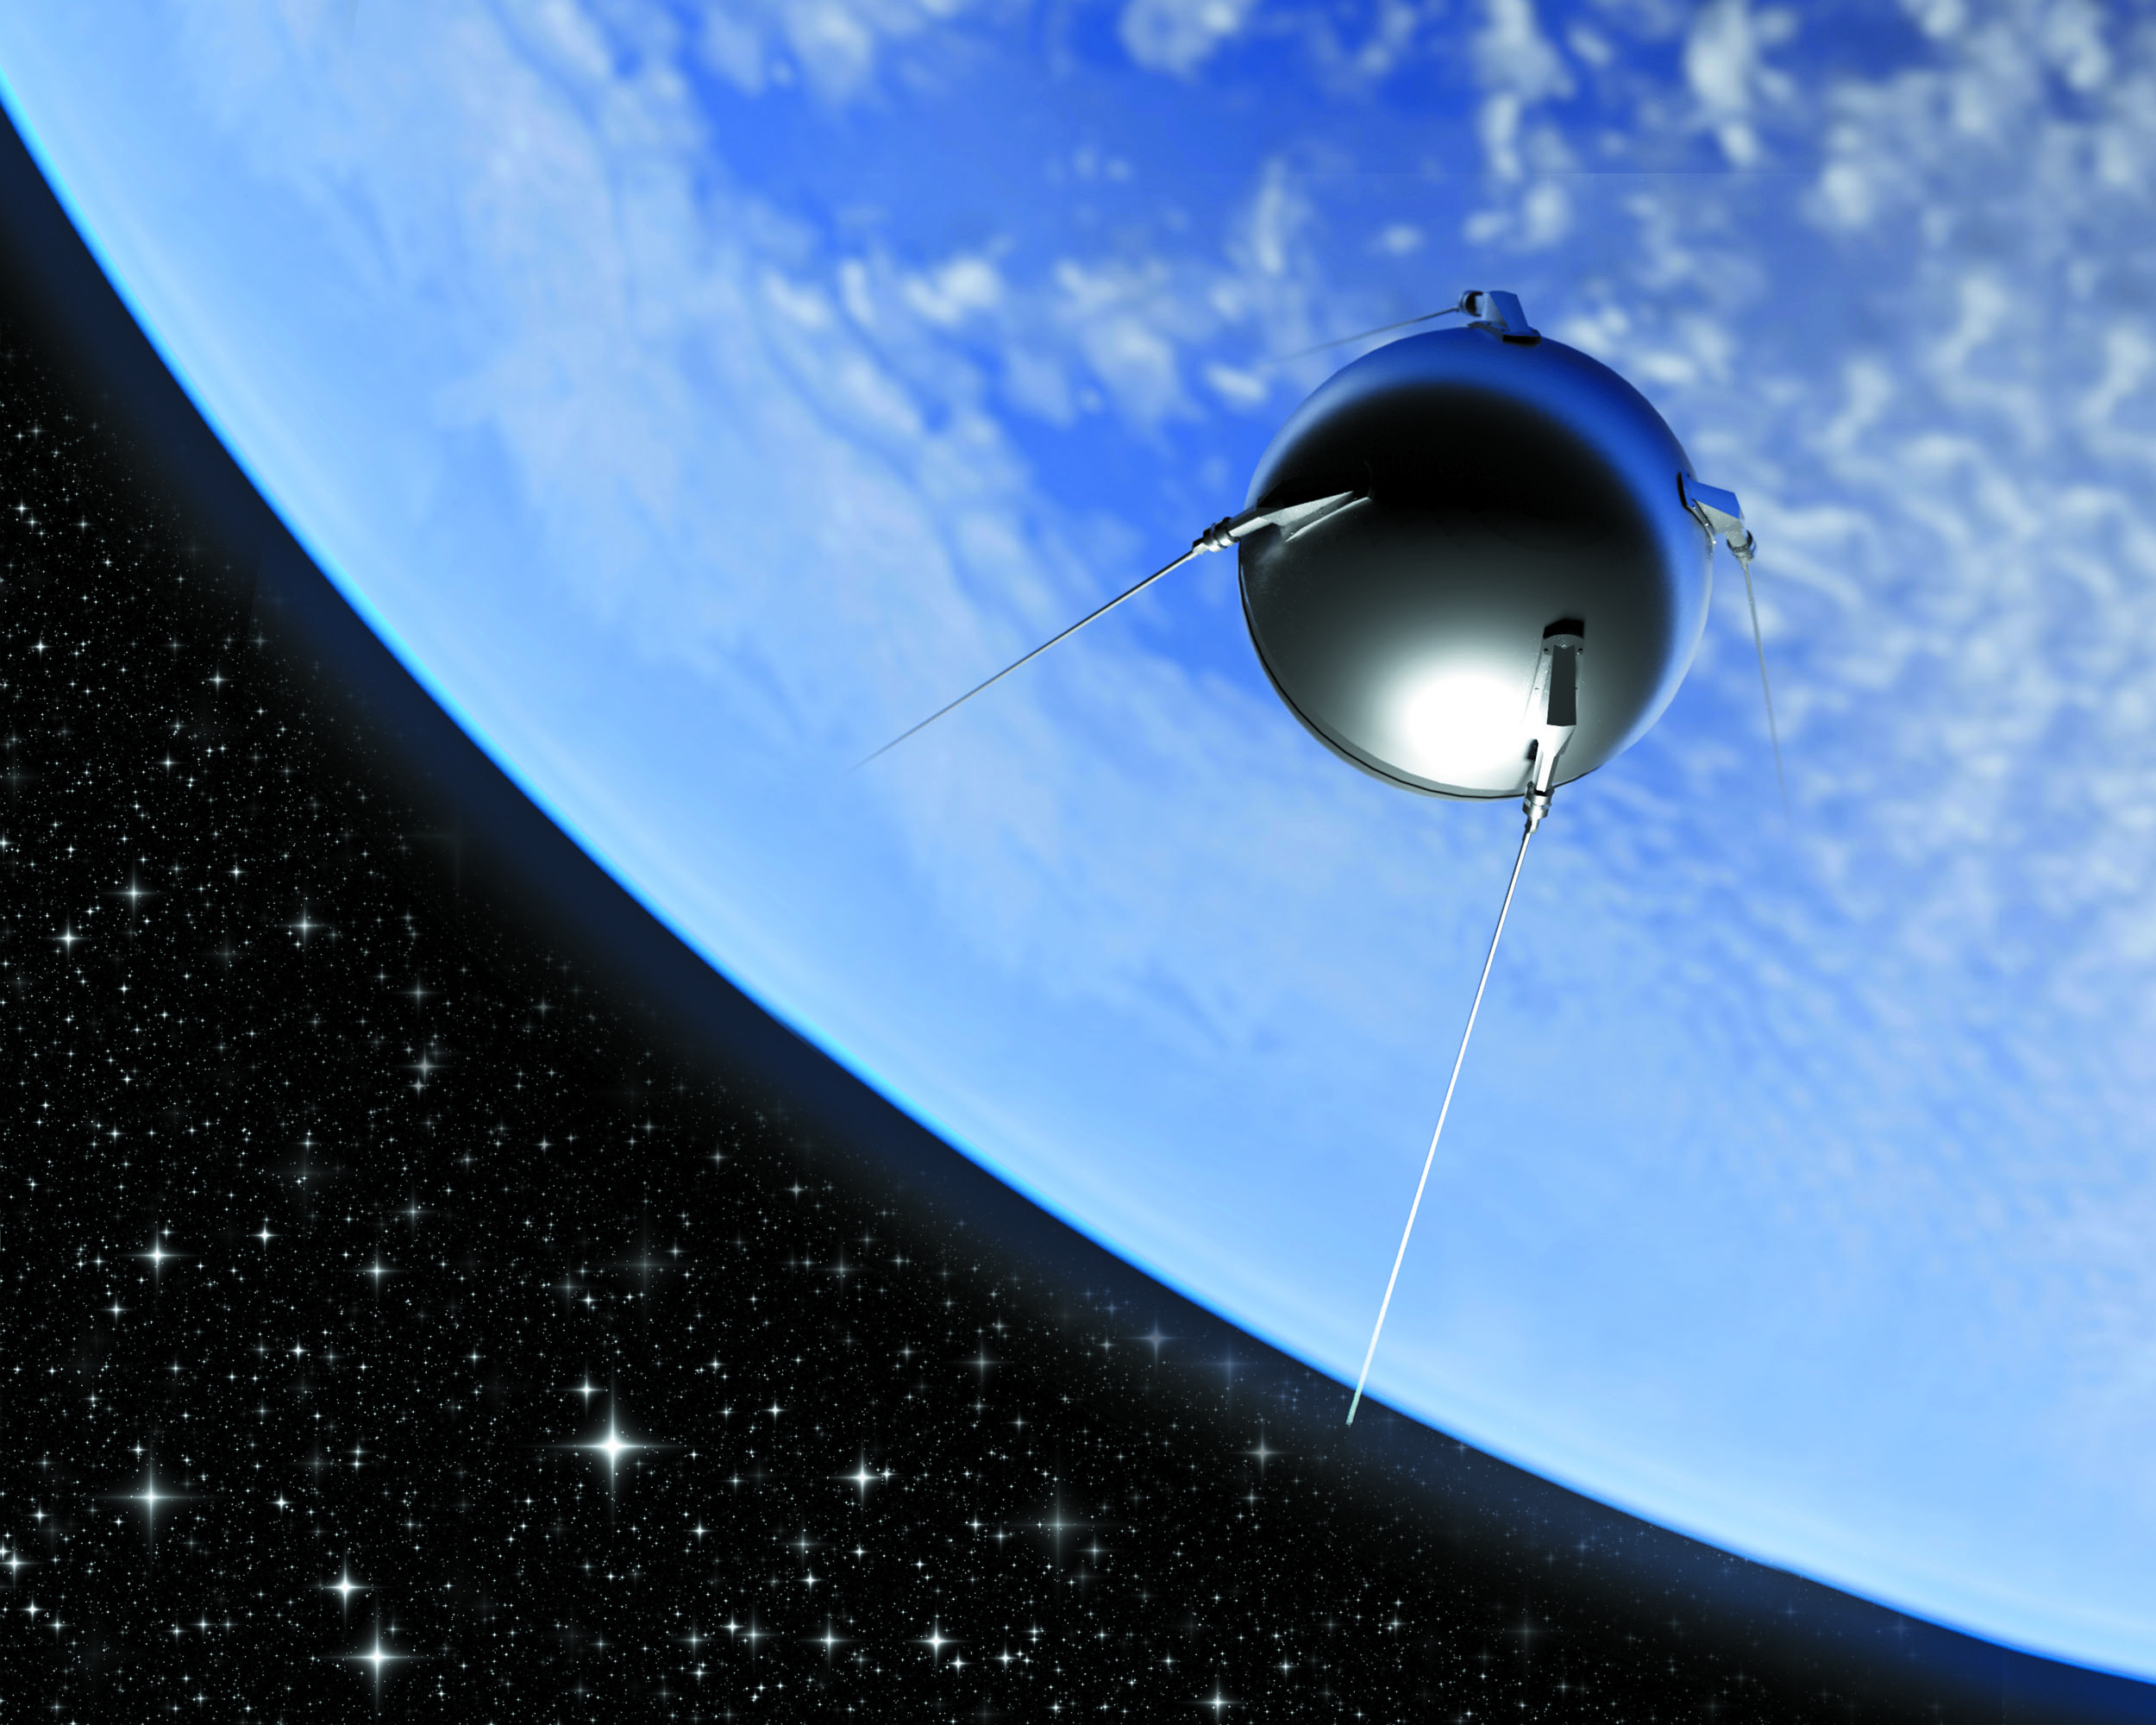 SPUTNIK: THE RUSSIAN MIRACLE